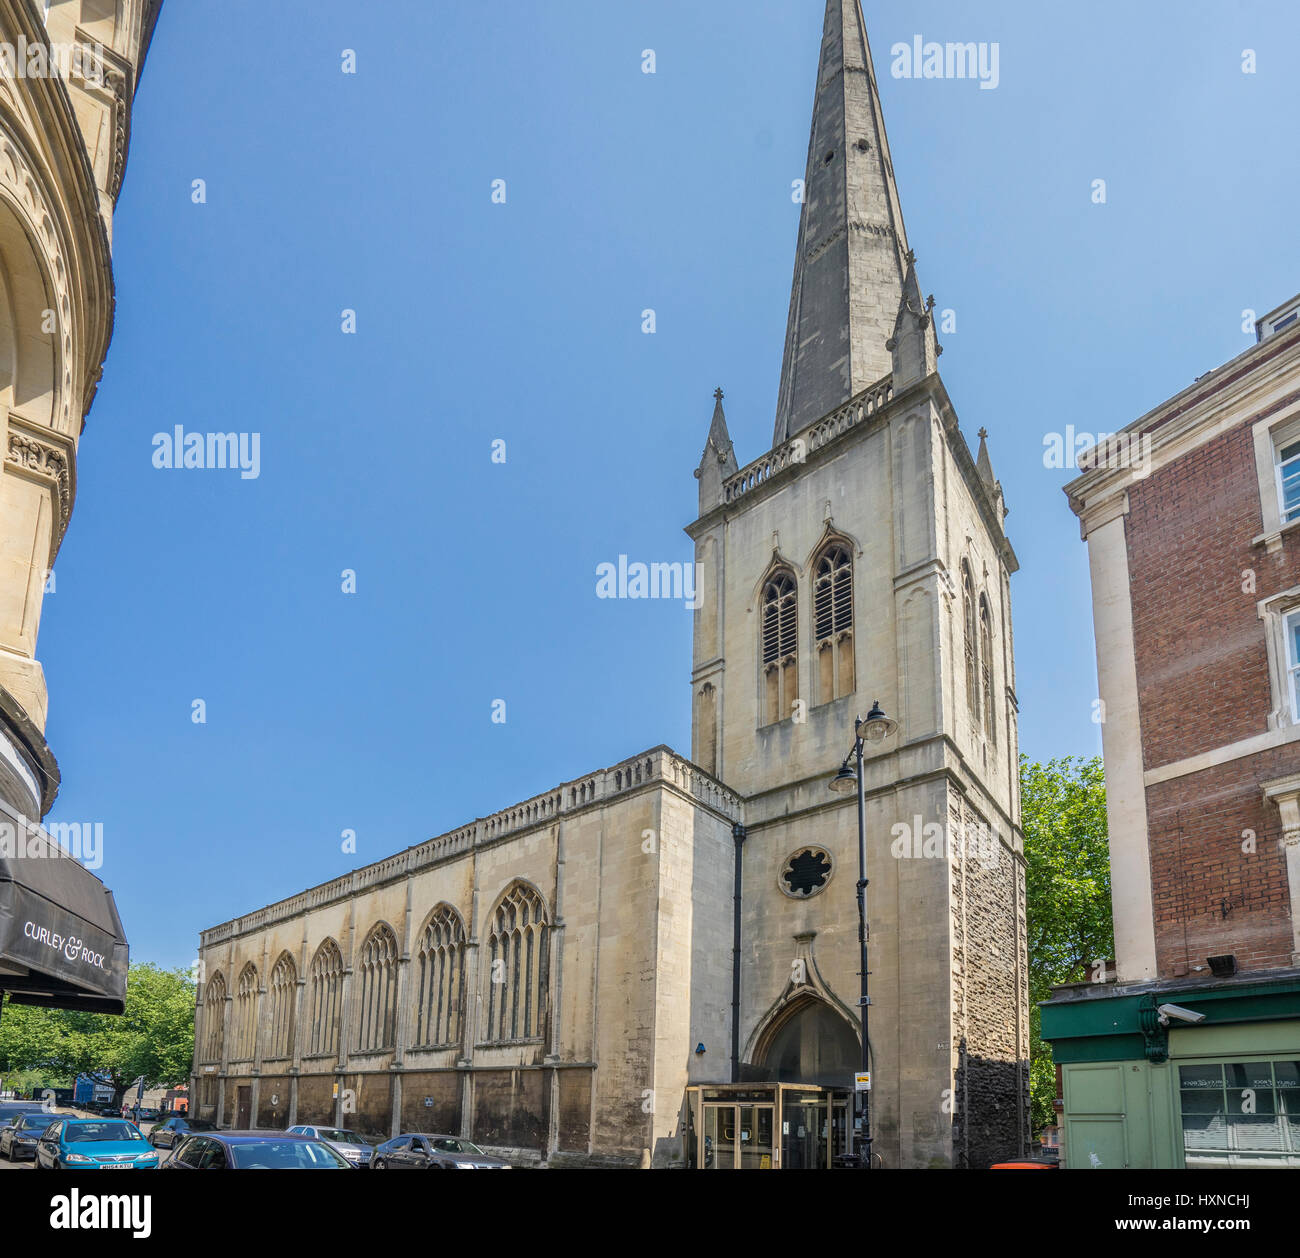 United Kingdom, South West England, Bristol, the former Church of St Nicholas today houses council offices - Stock Image